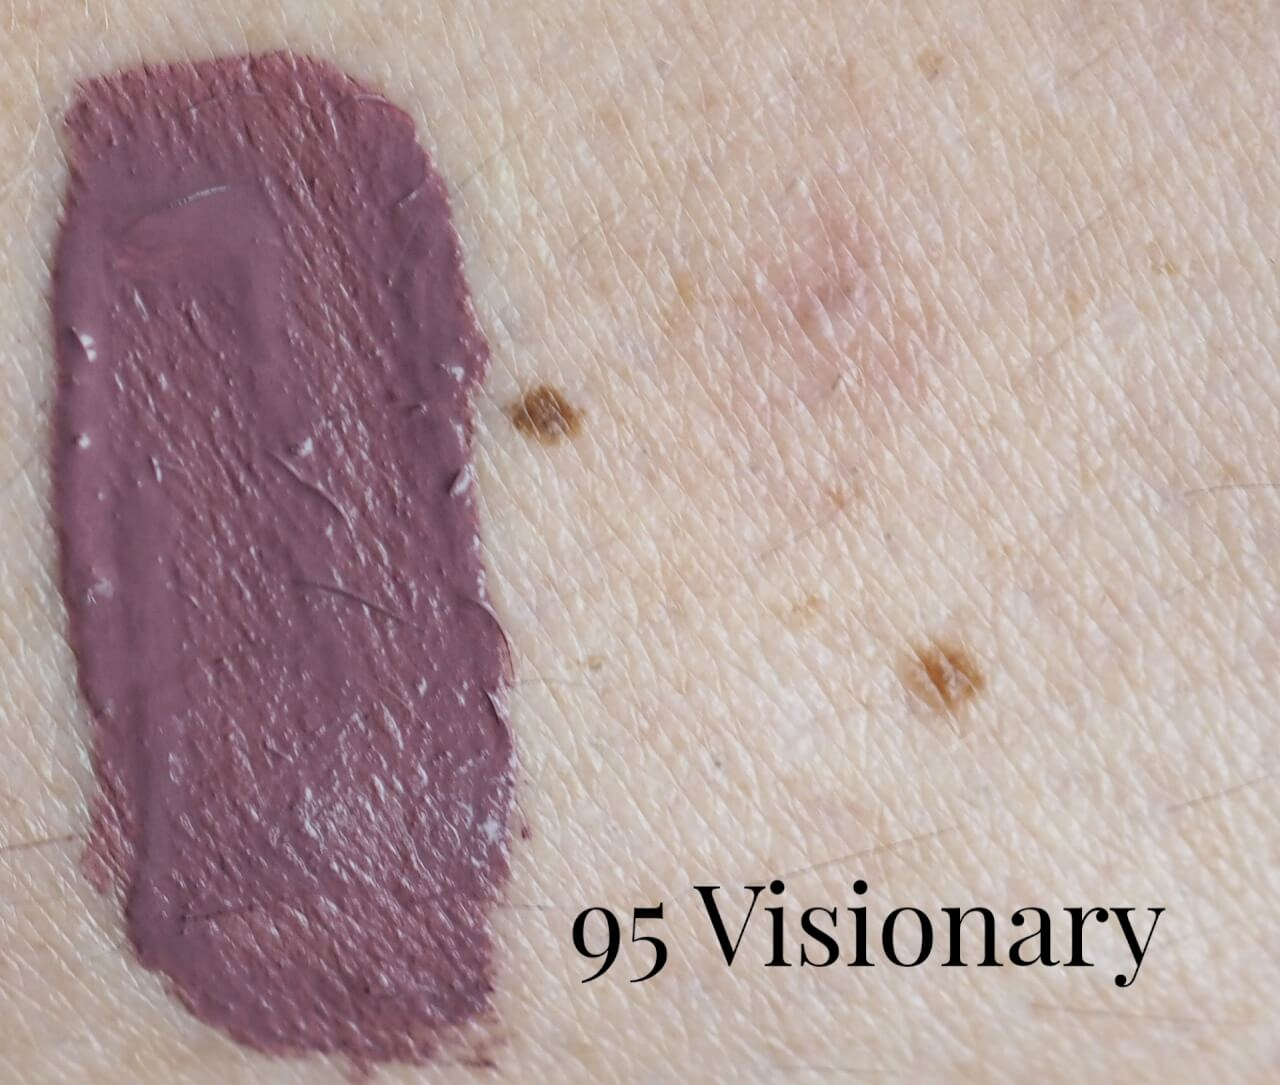 95 Visionary Super Stay Matte Ink